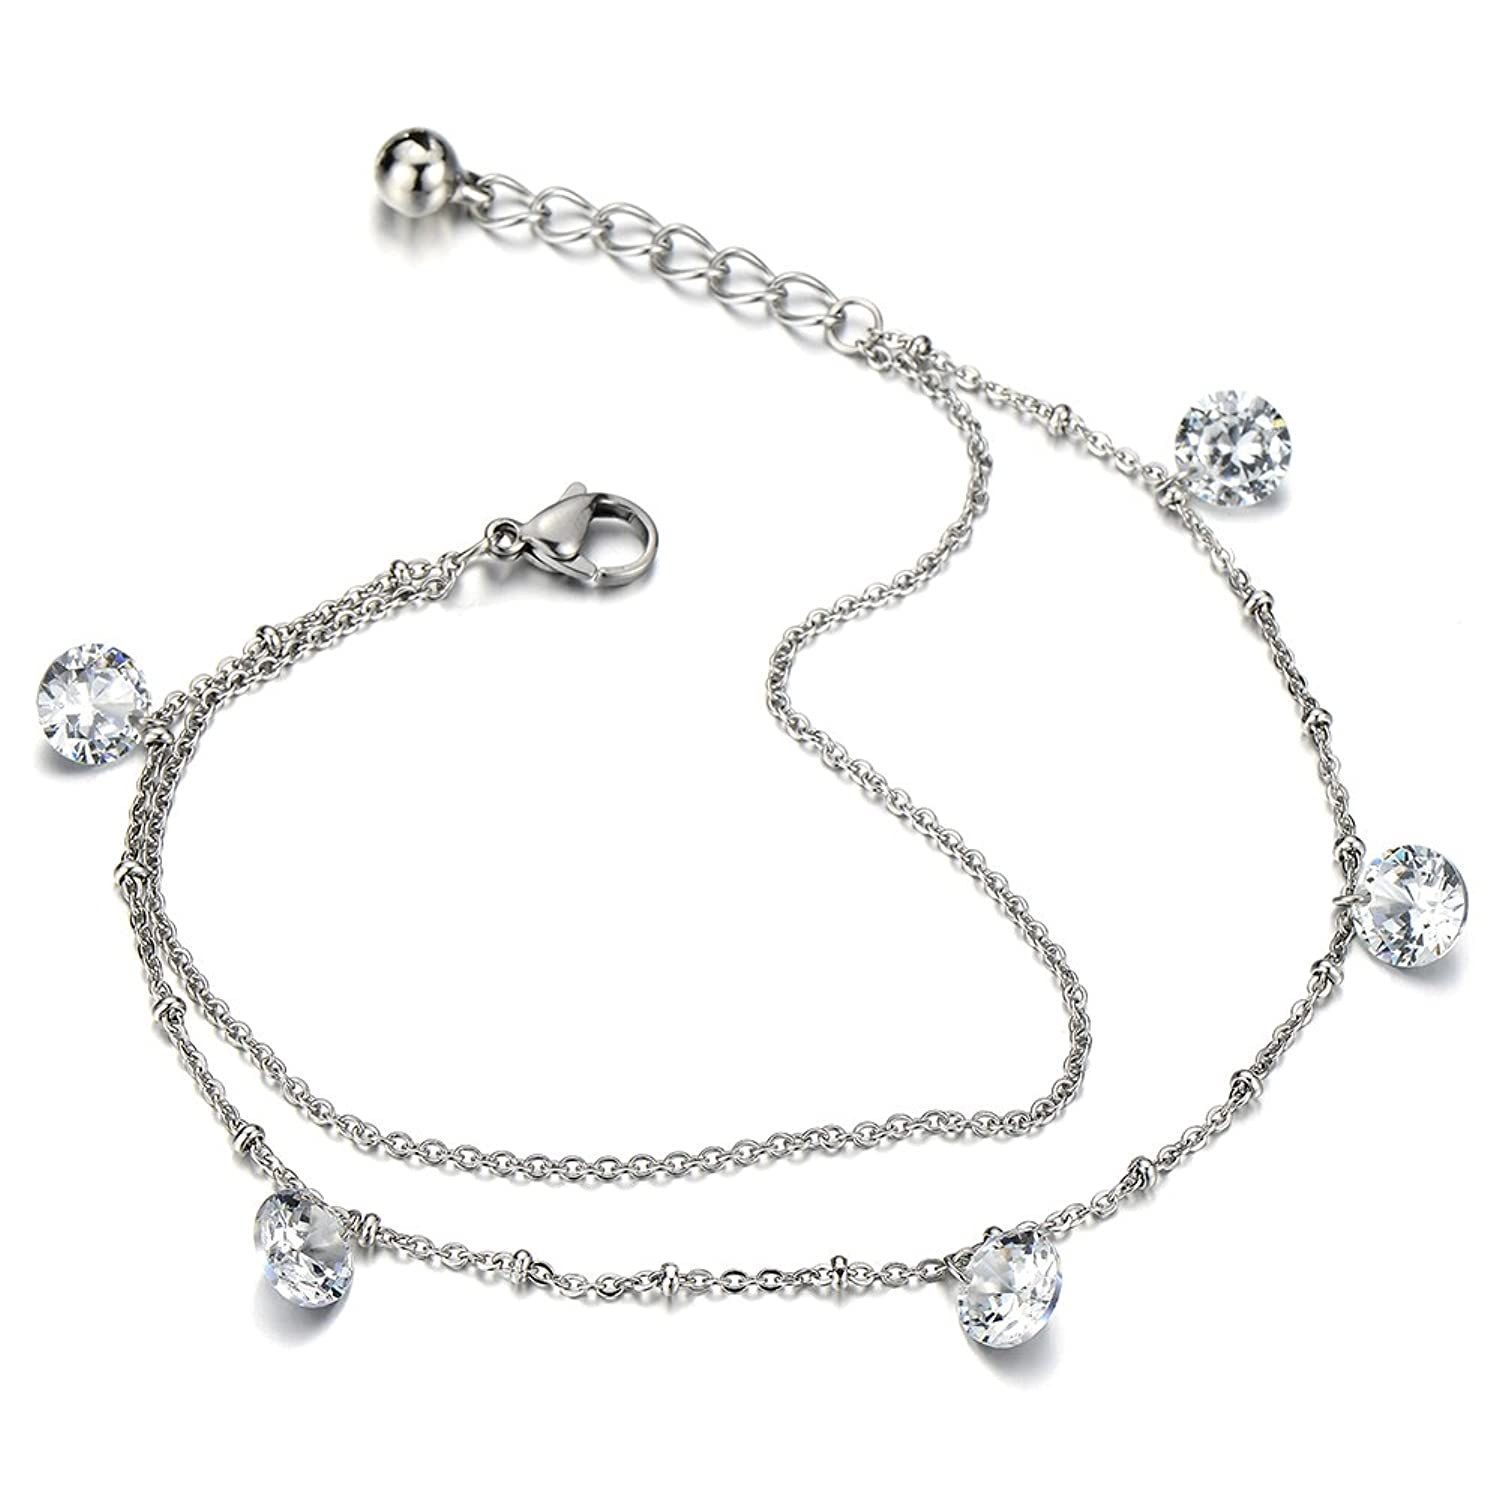 bracelet carats zirconia ankle anklet cz silver sterling chain key cubic ice lock pin beach